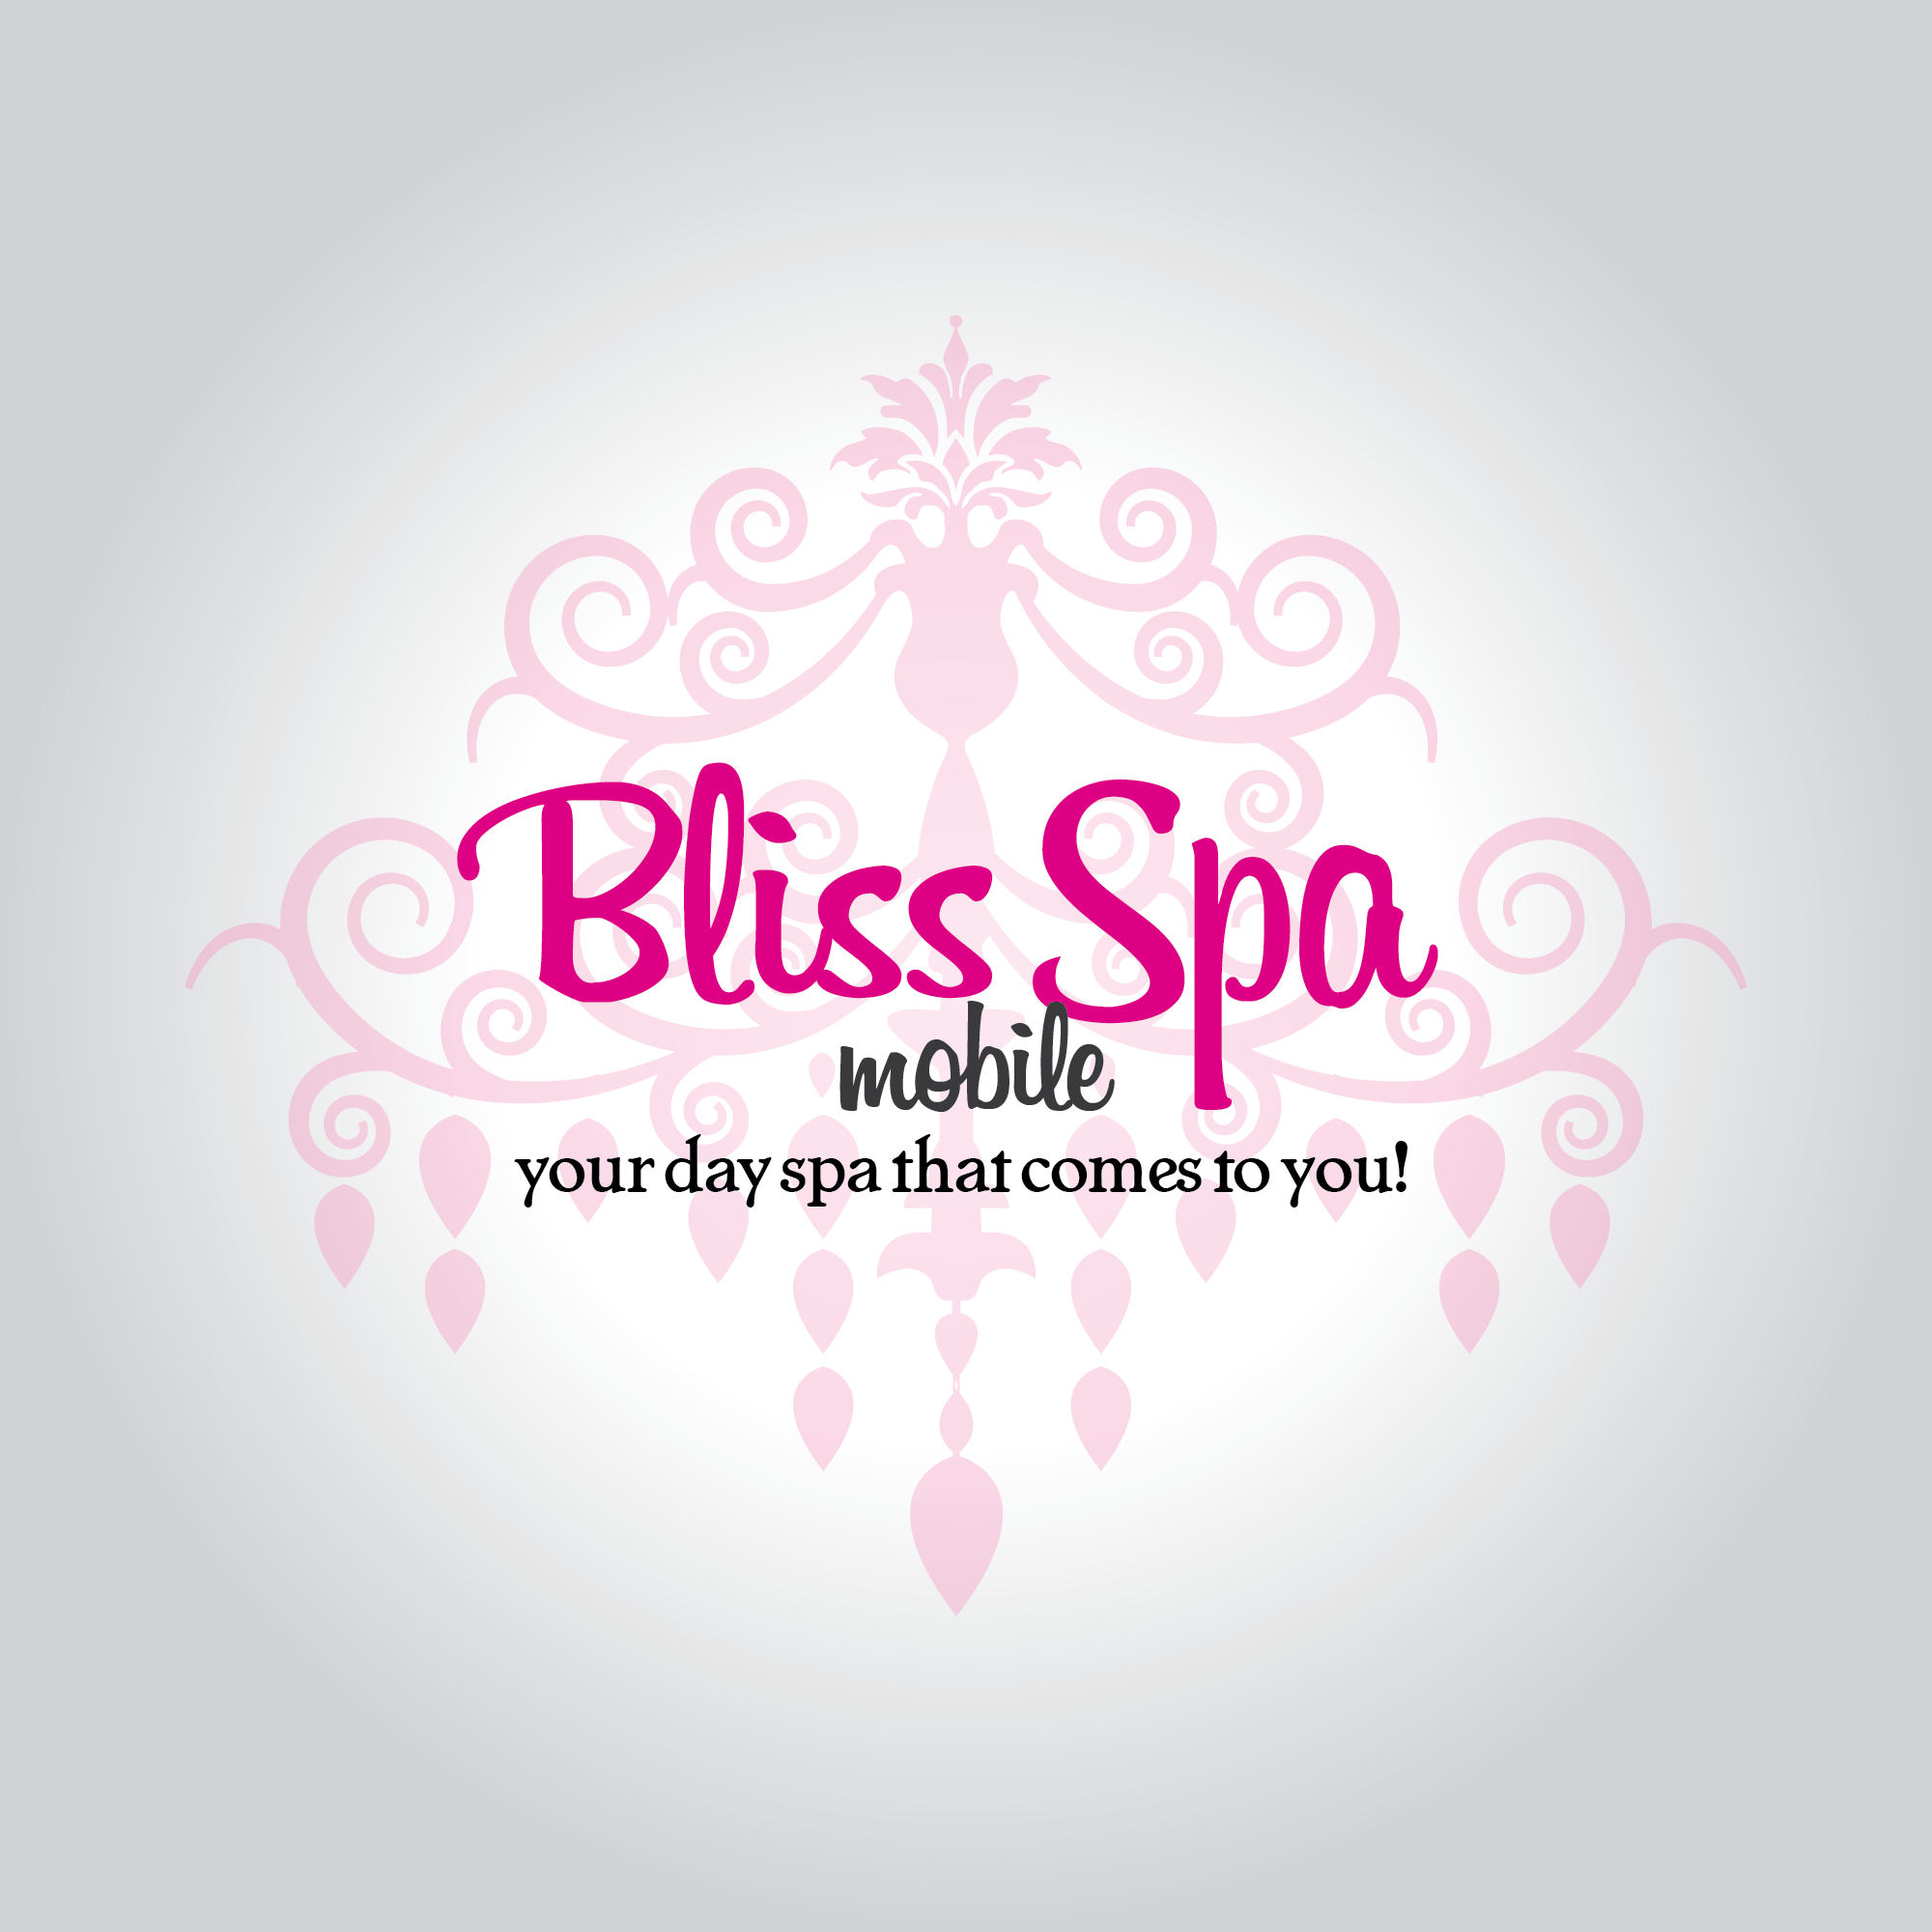 Logo Design by creatives - Entry No. 73 in the Logo Design Contest New Logo Design for Bliss Spa Mobile.